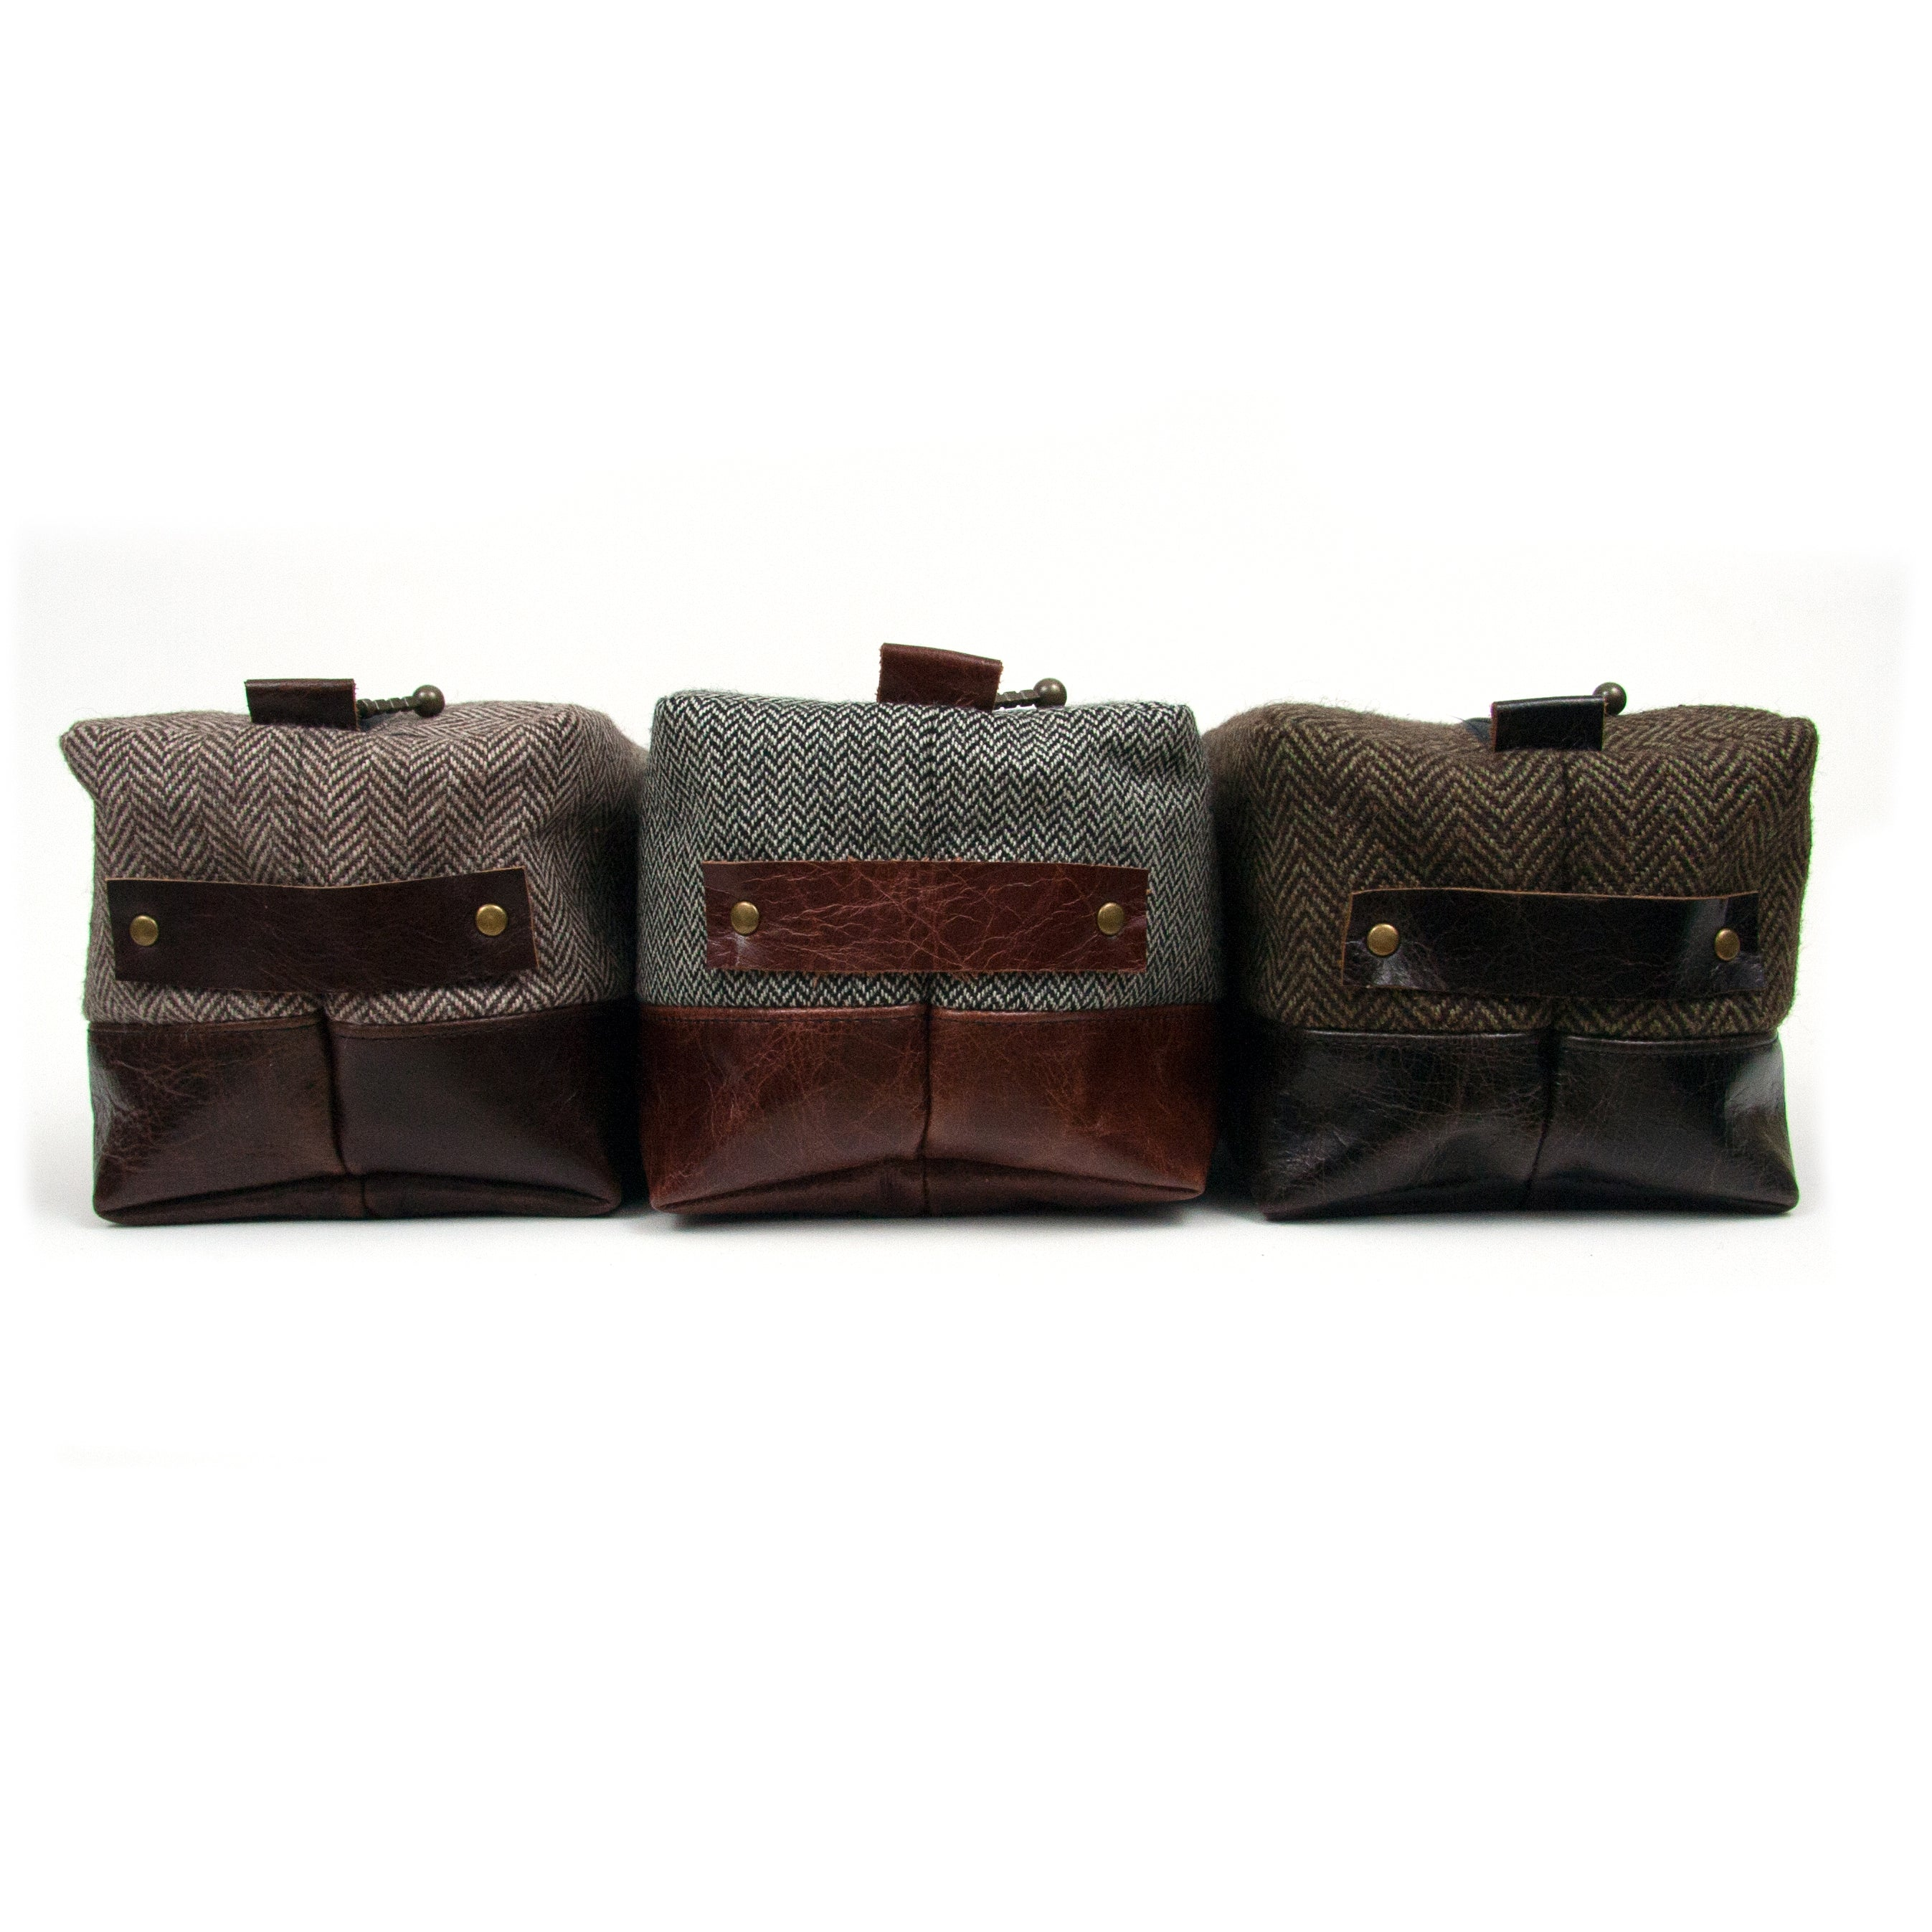 Personalized Dopp Kits - Luxe Collection Compact Size